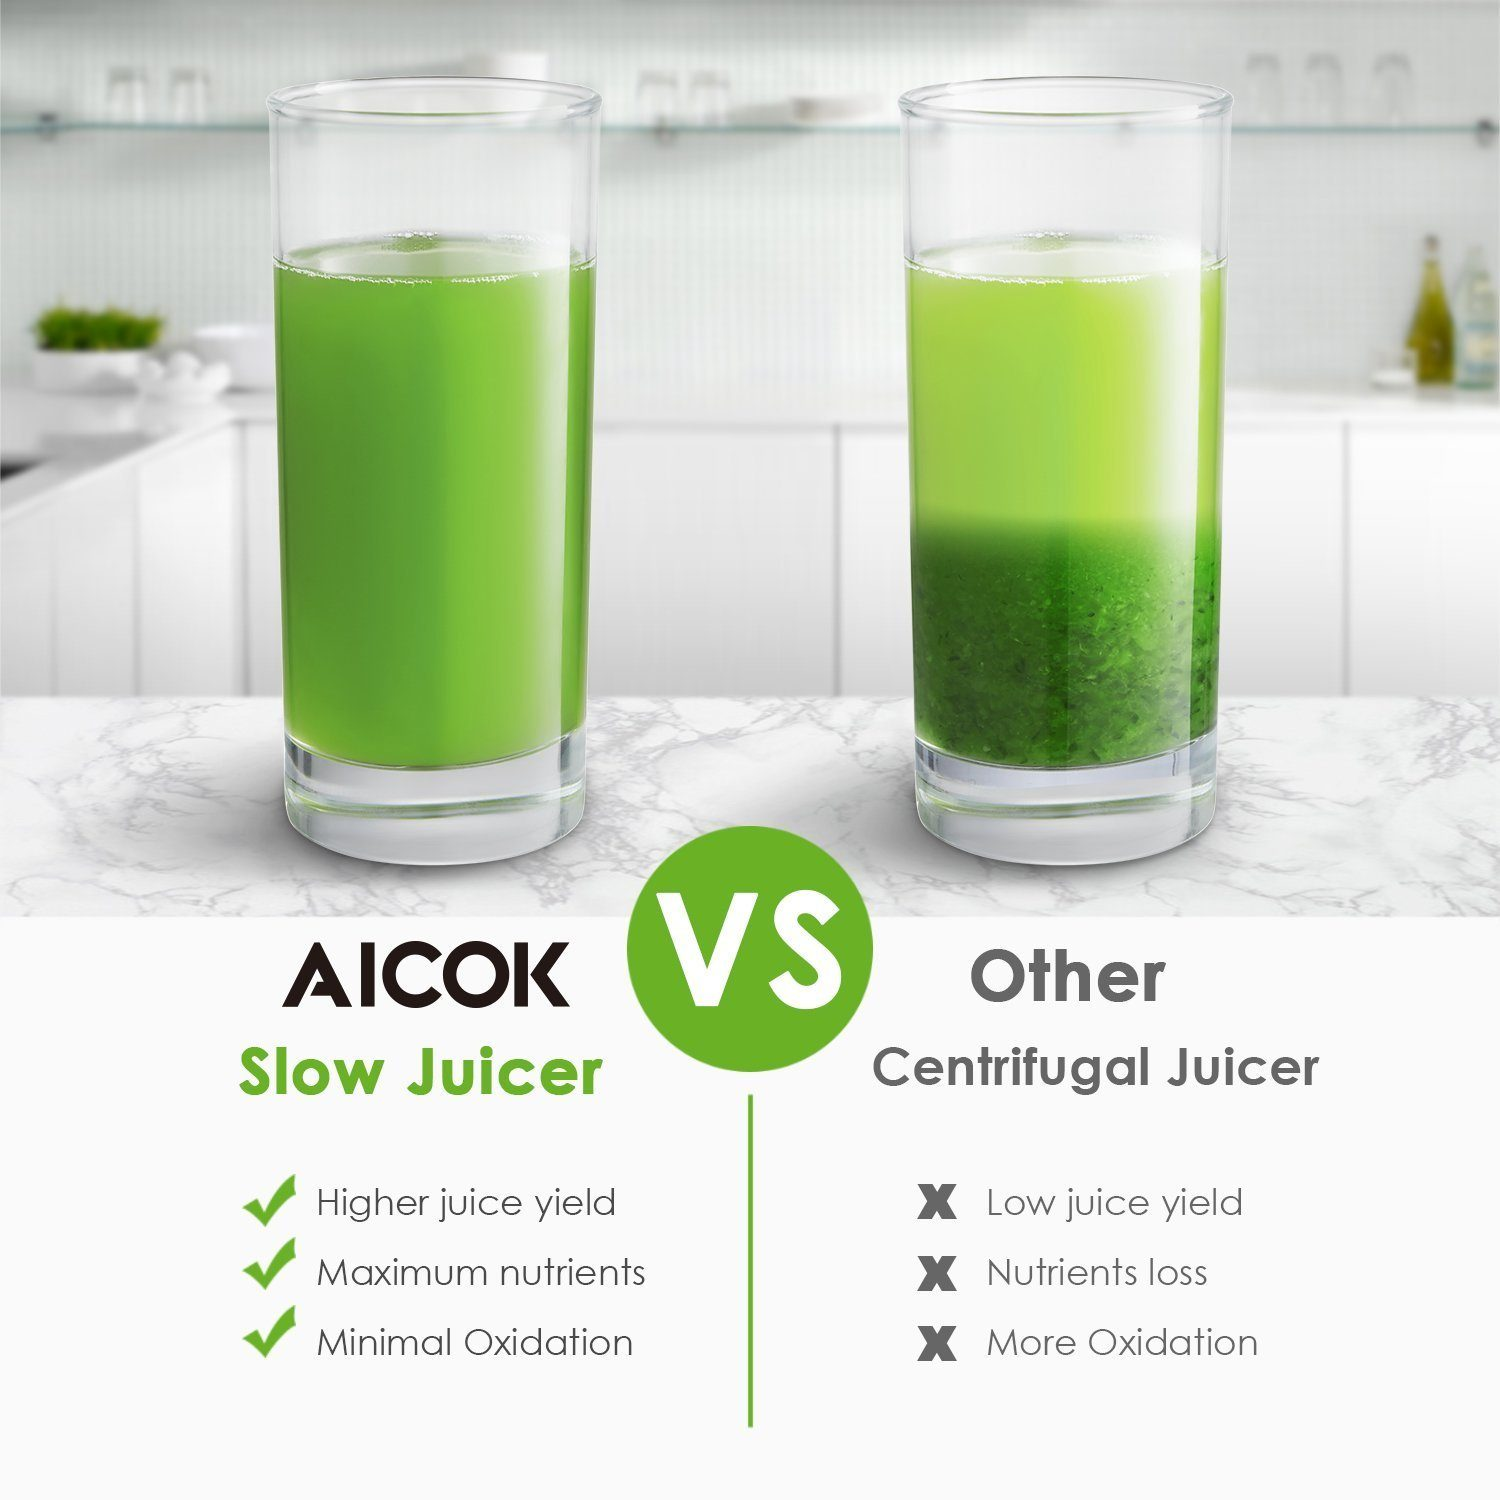 Difference between Aicok slow juicer and centrifugal juicer